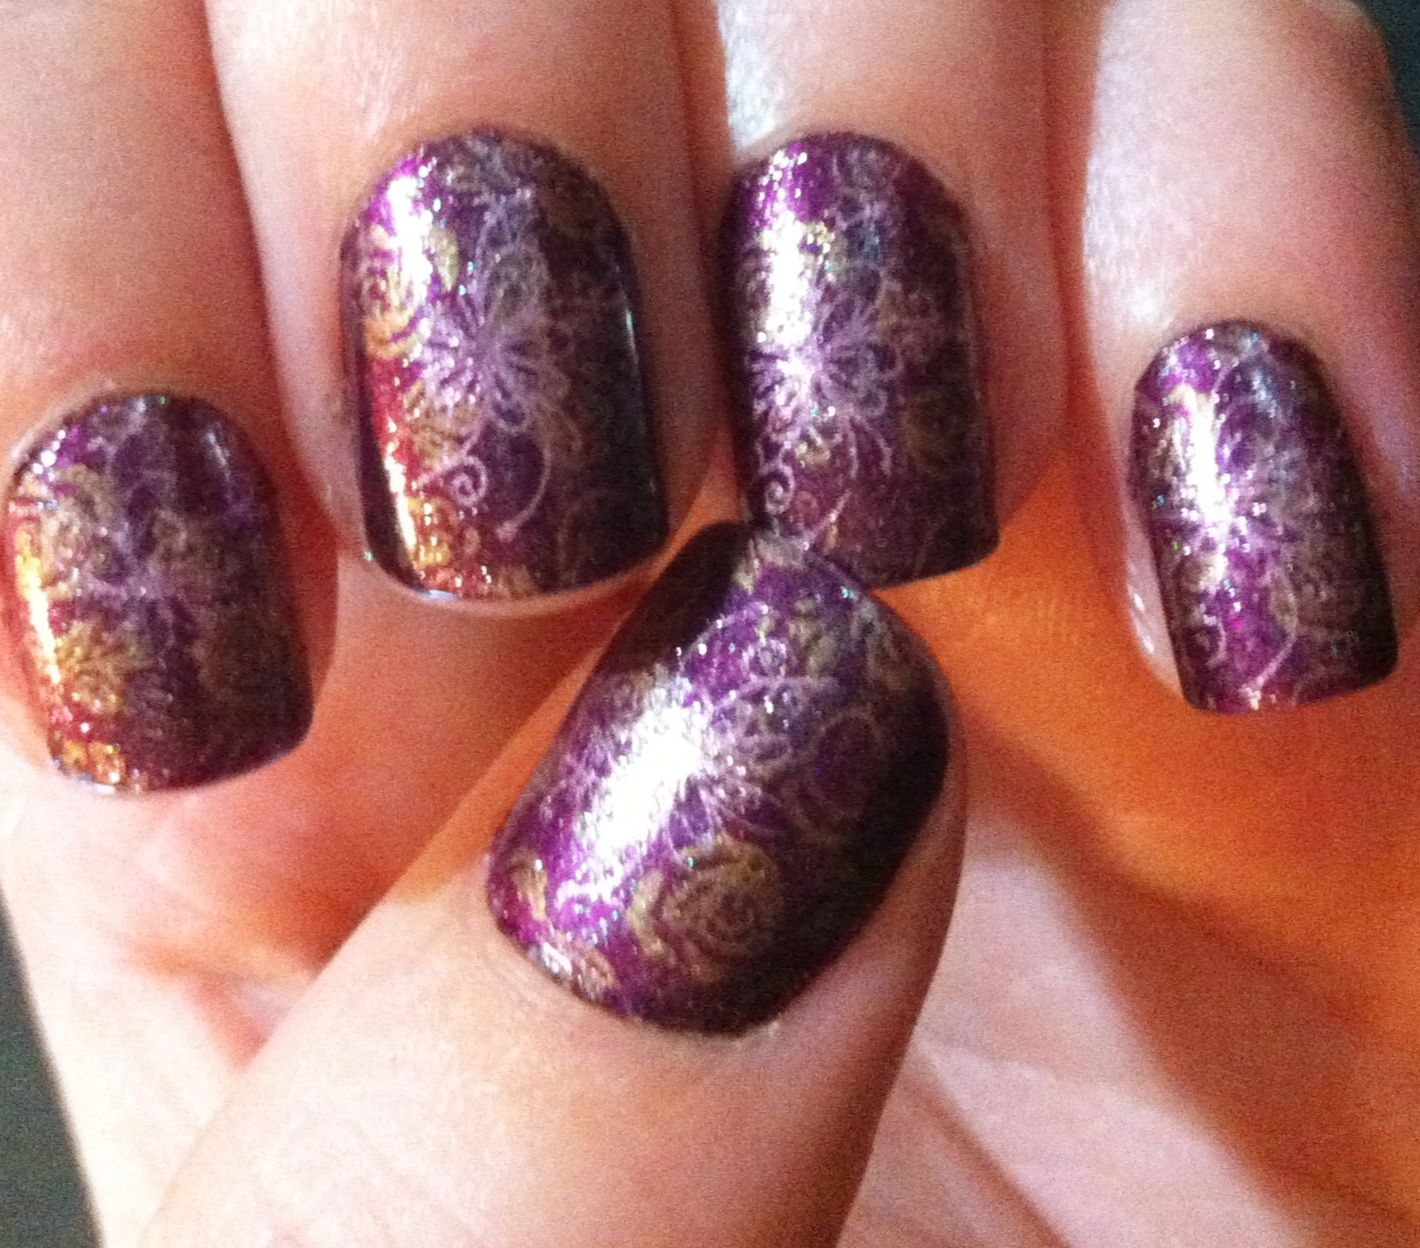 cool one color acrylic nail designs : Acrylic Nail Designs - Cool One Color Acrylic Nail Designs : Acrylic Nail Designs